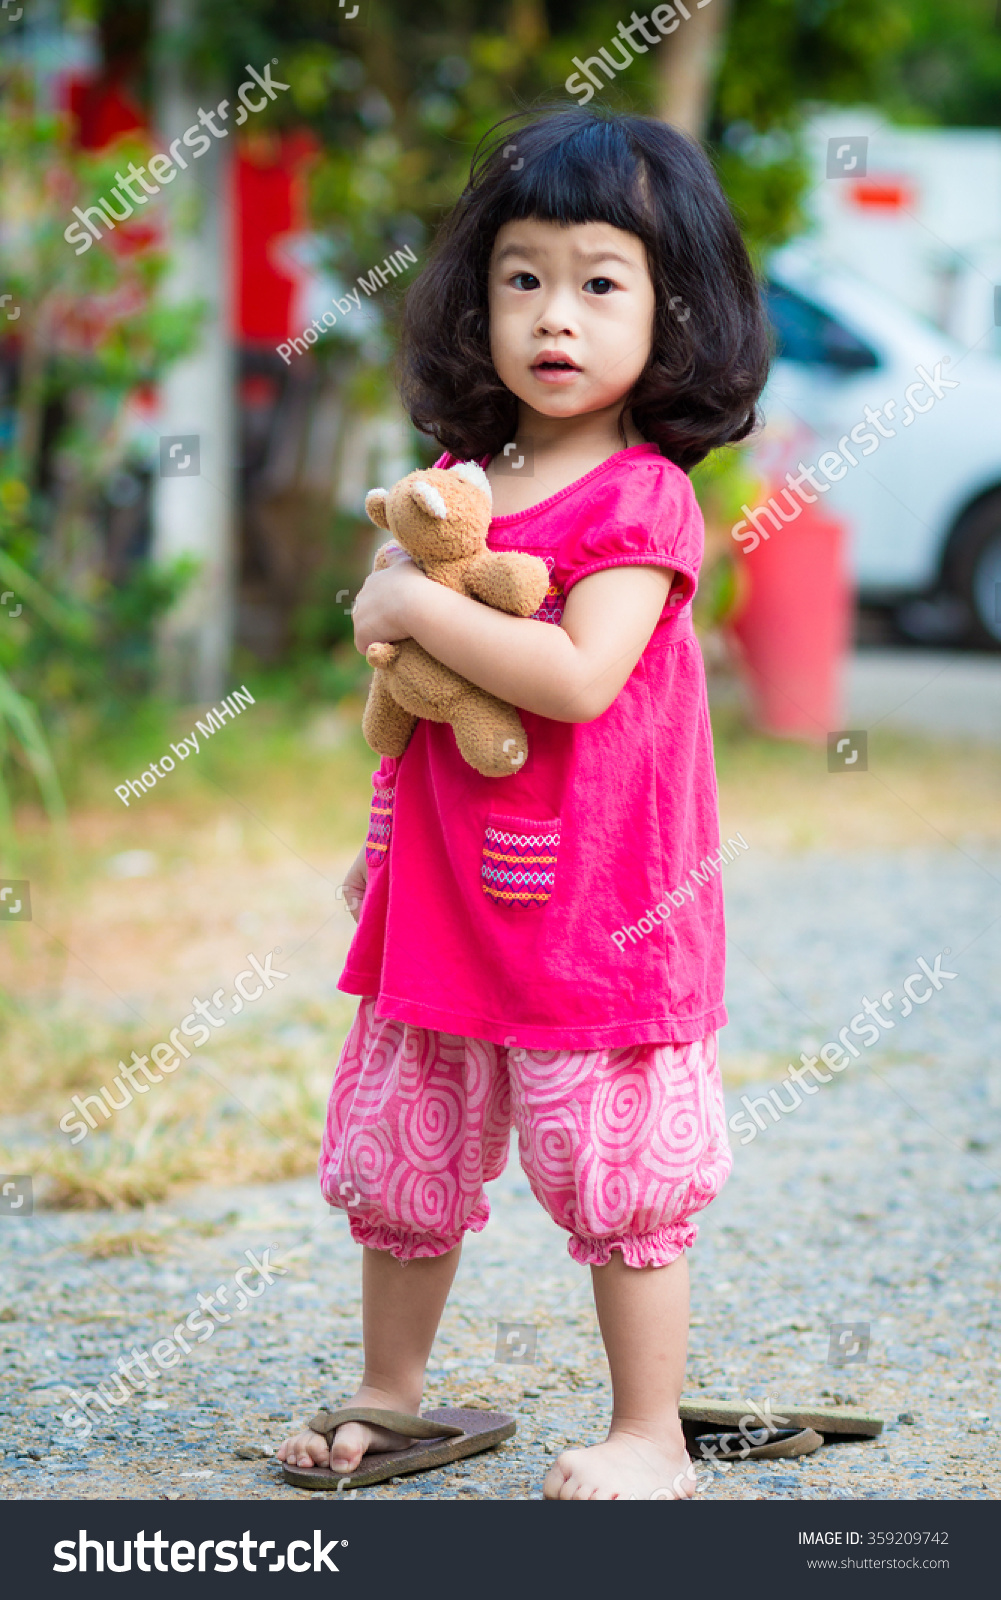 asian baby cute girl curly hair stock photo (download now) 359209742